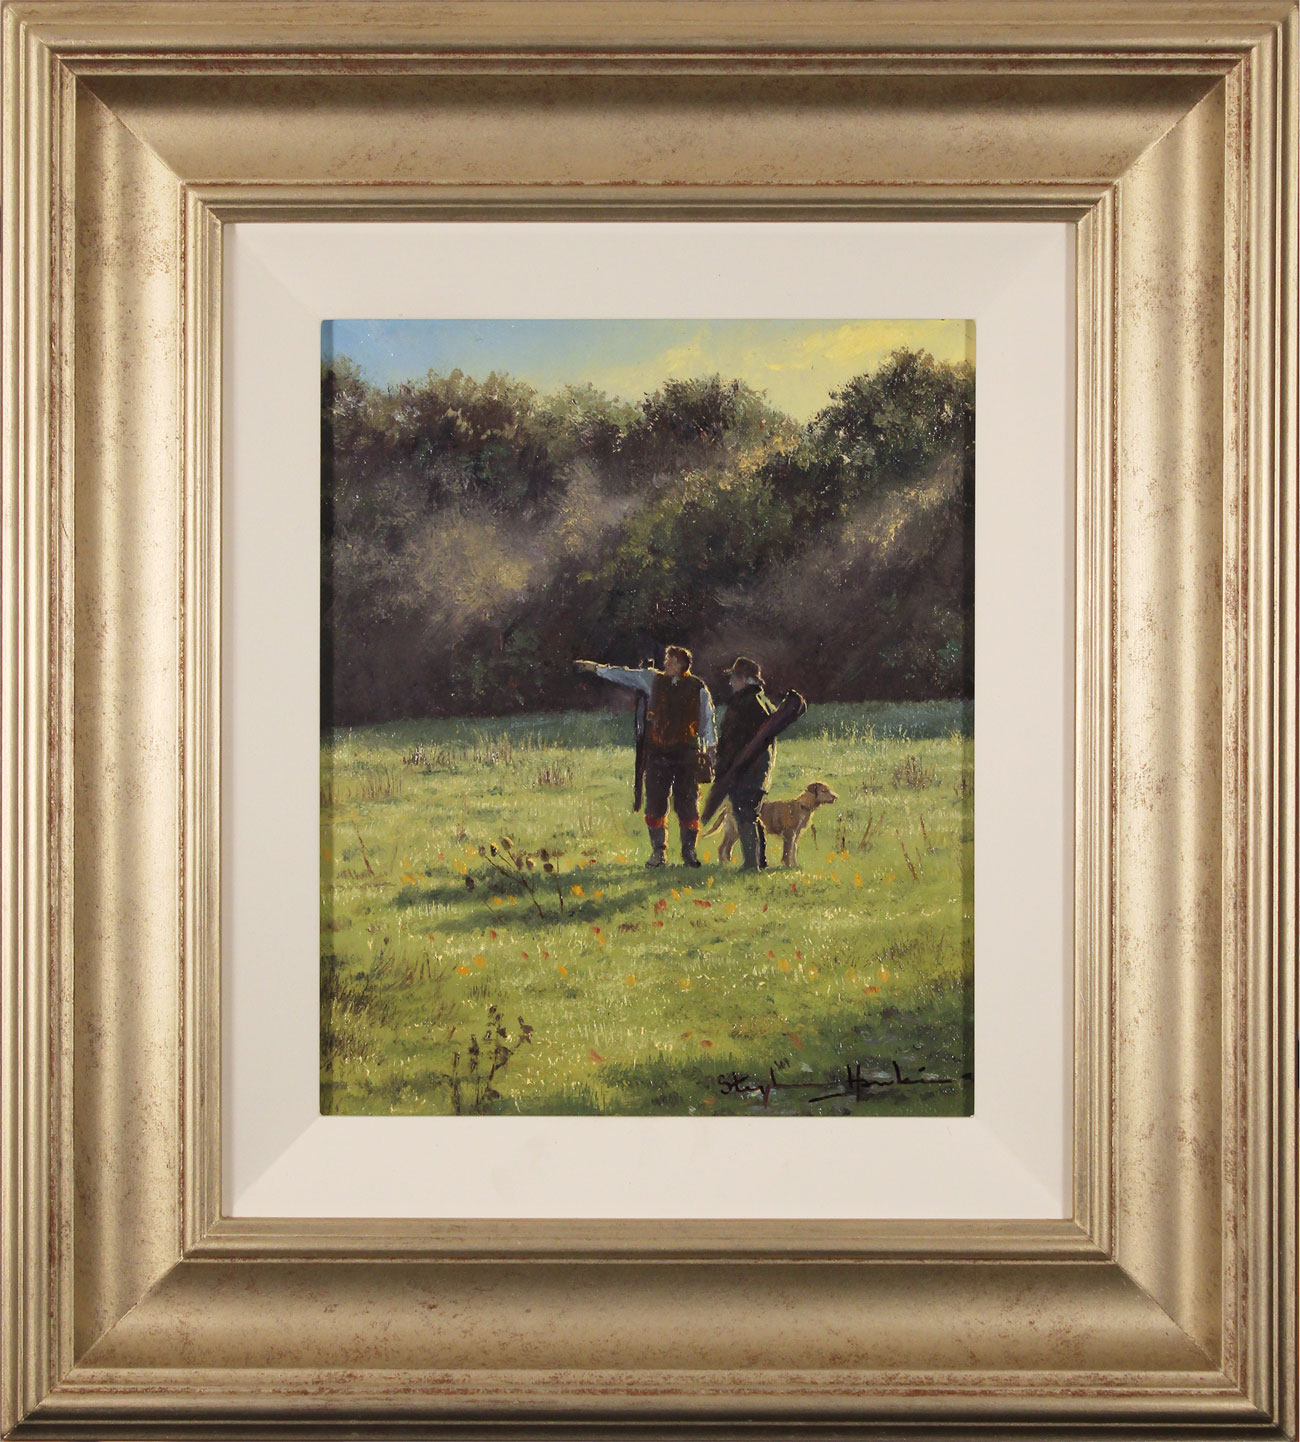 Stephen Hawkins, Original oil painting on panel, The Gamekeepers. Click to enlarge